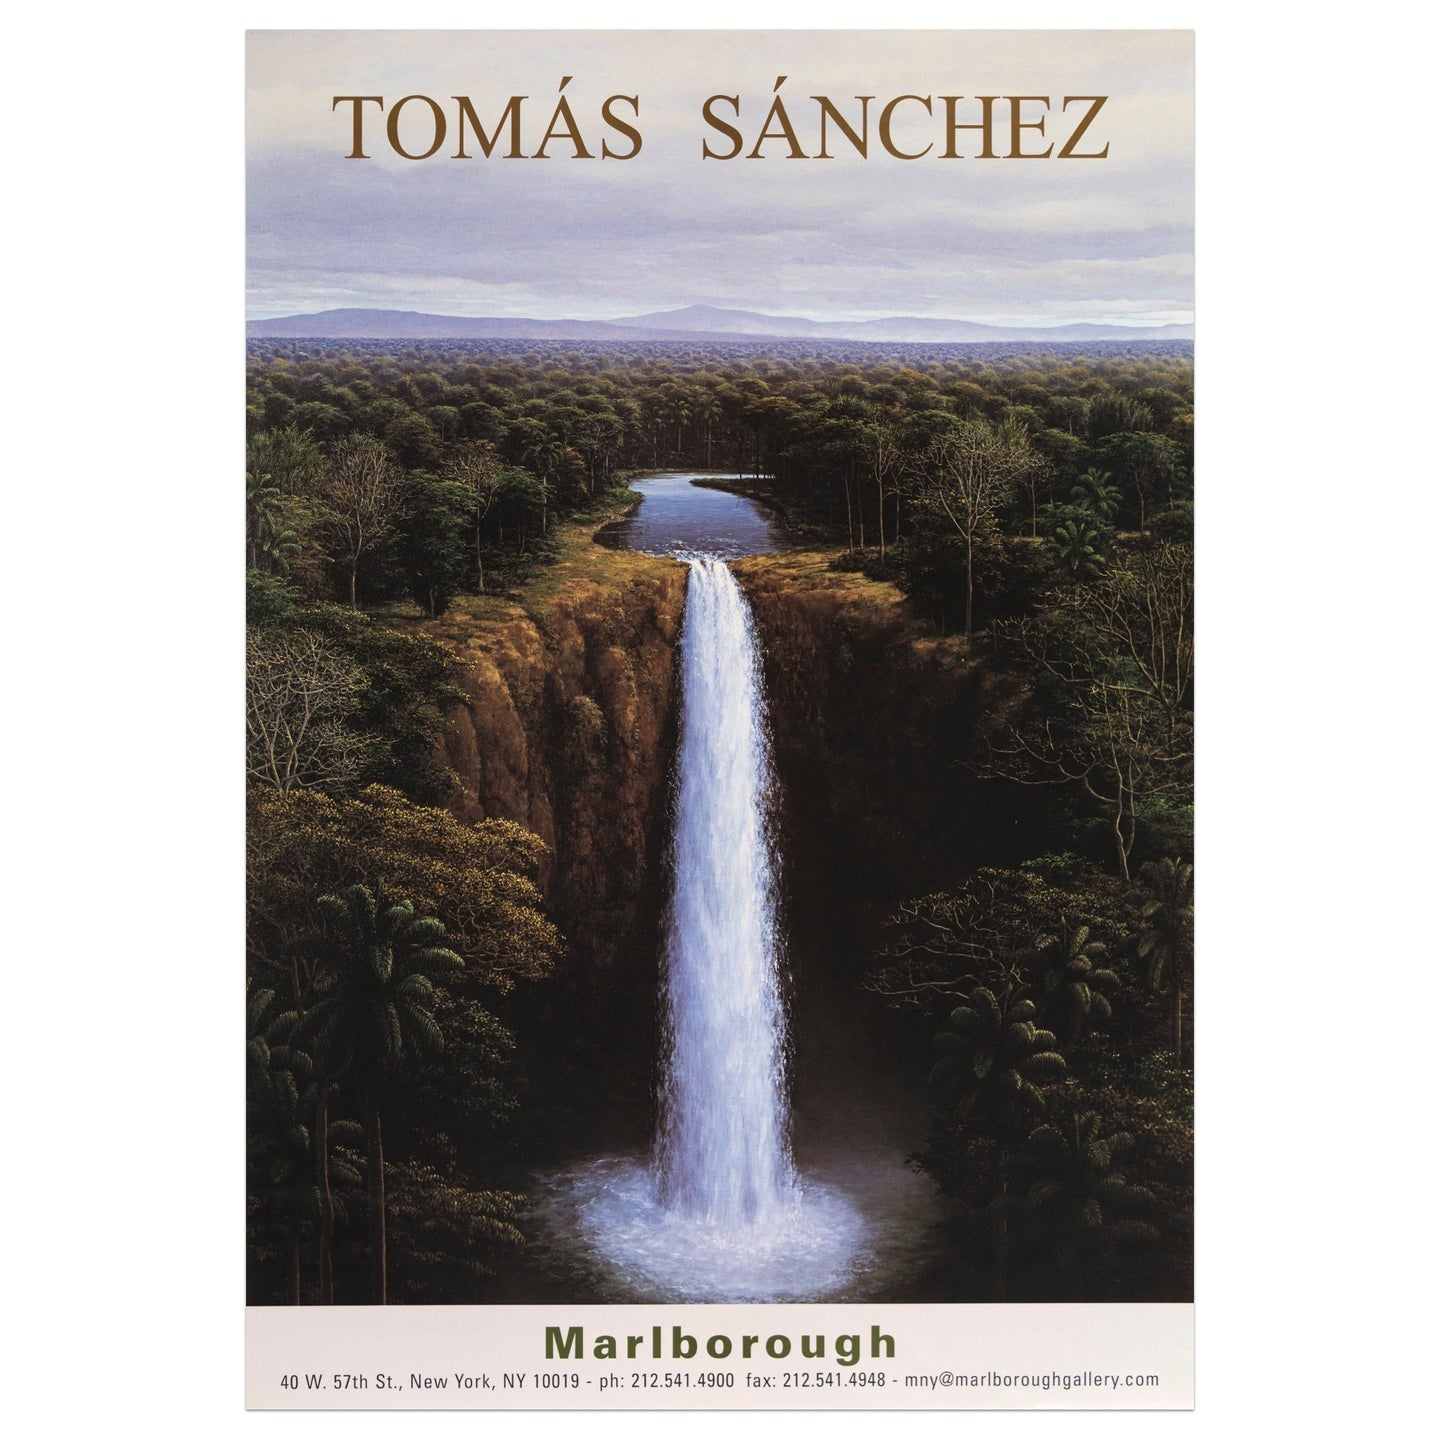 Marlborough poster for Tomás Sánchez featuring a waterfall scene